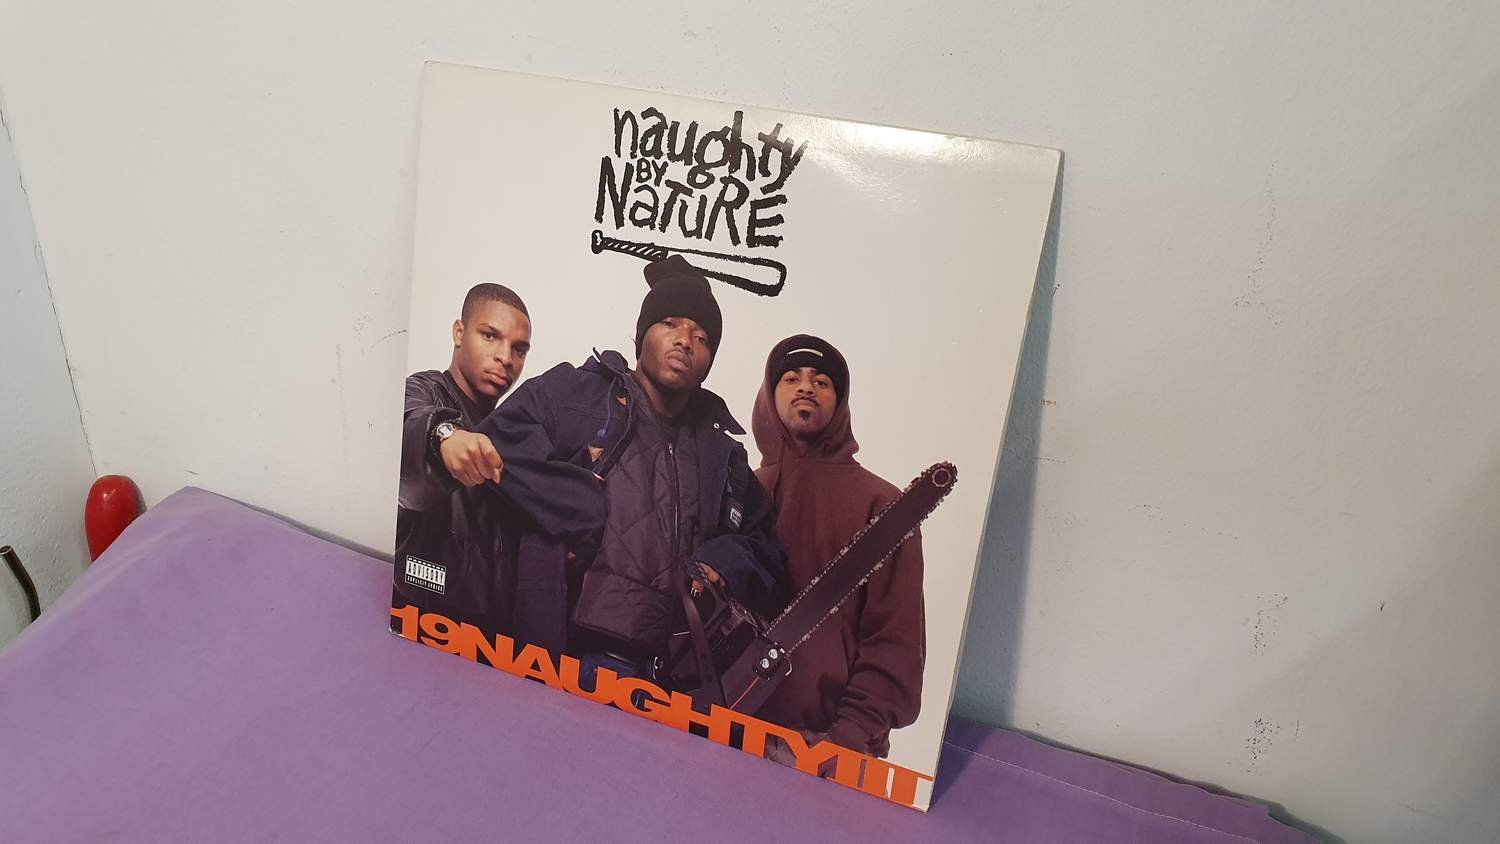 Naughty By Nature - 19 Naughty Ill - Hiphop - USA - 1993 - VG